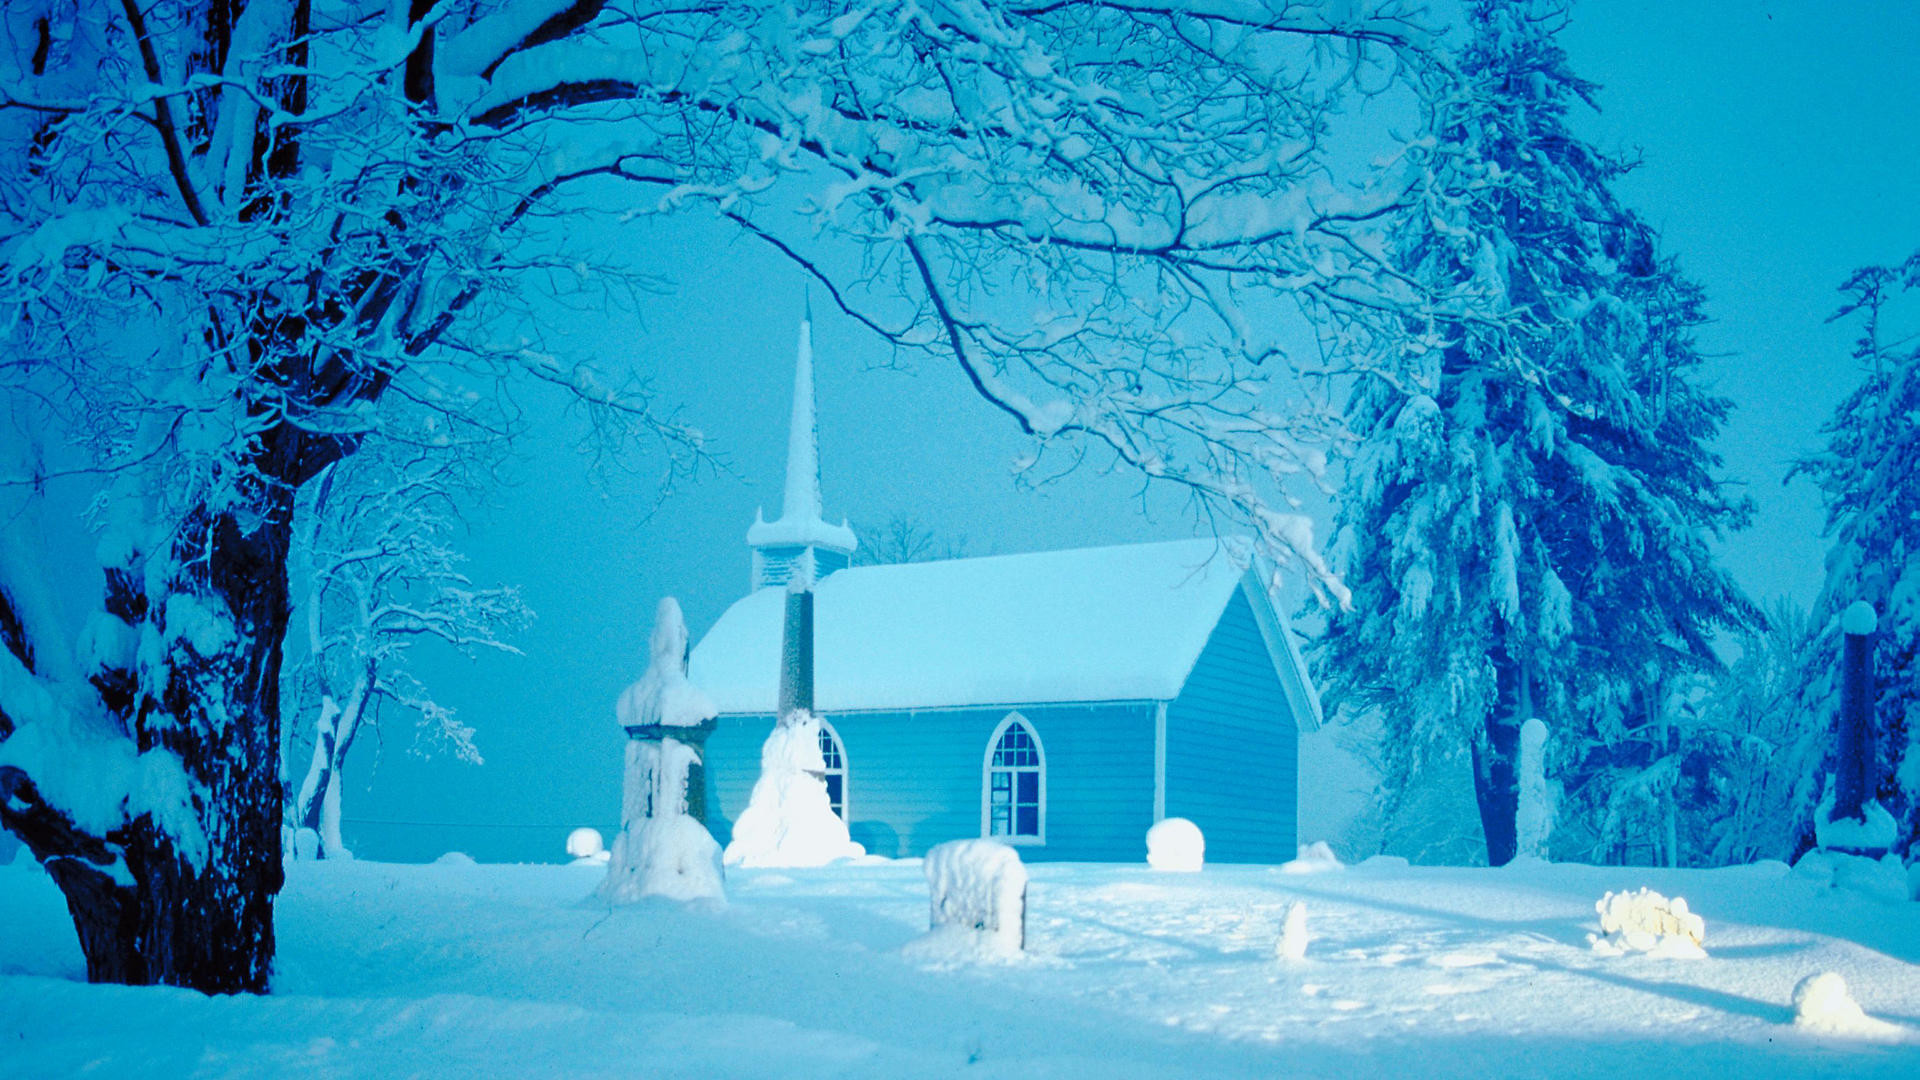 Christmas winter scenes wallpaper 47 images for Christmas landscape images